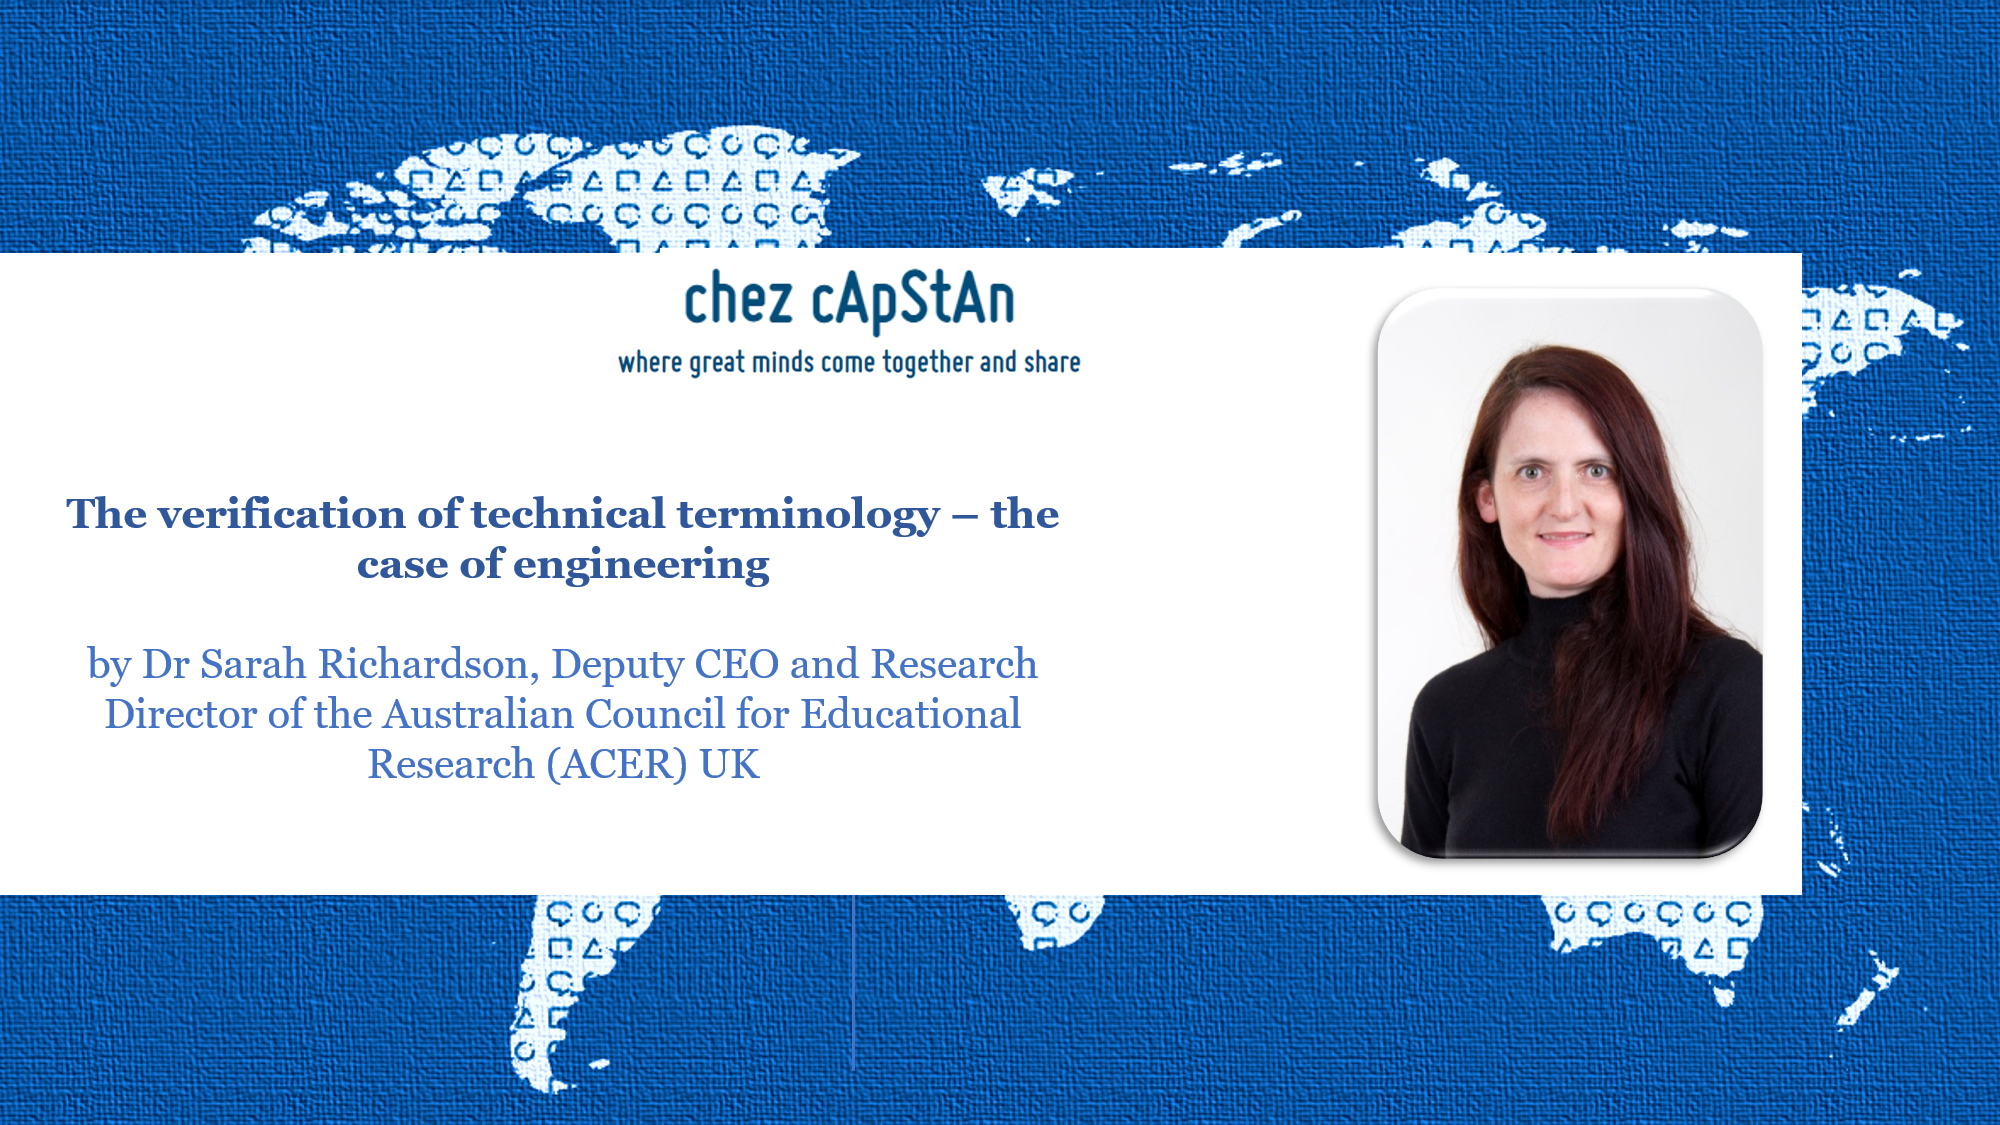 The verification of technical terminology – the case of engineering